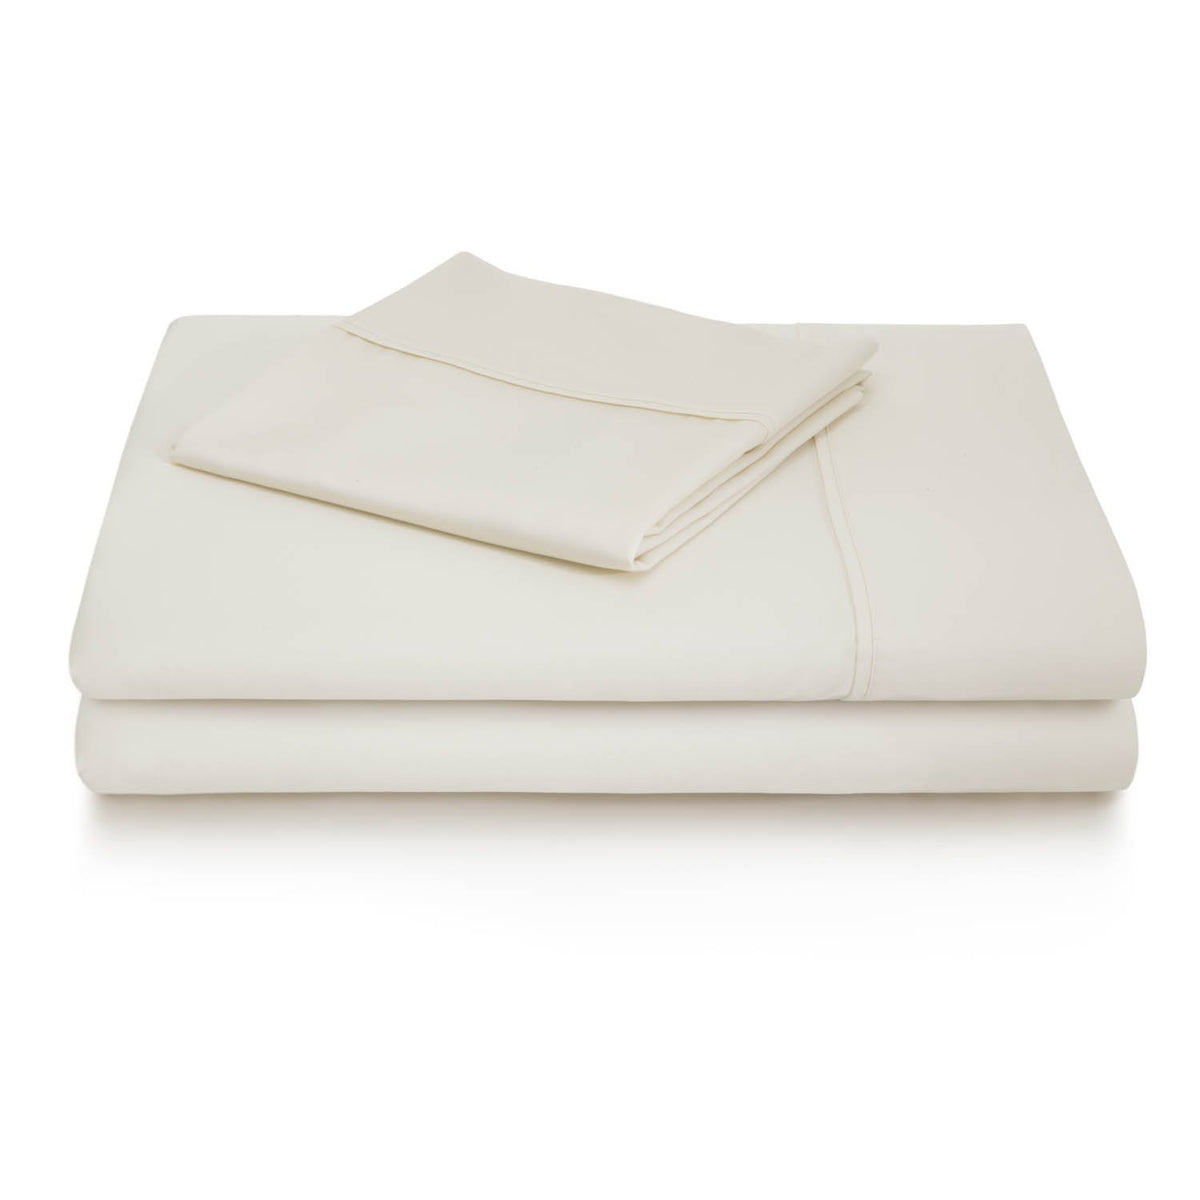 WOVEN 600 Thread Count Cotton Blend Sheet Set Sheet Set Malouf Twin Ivory